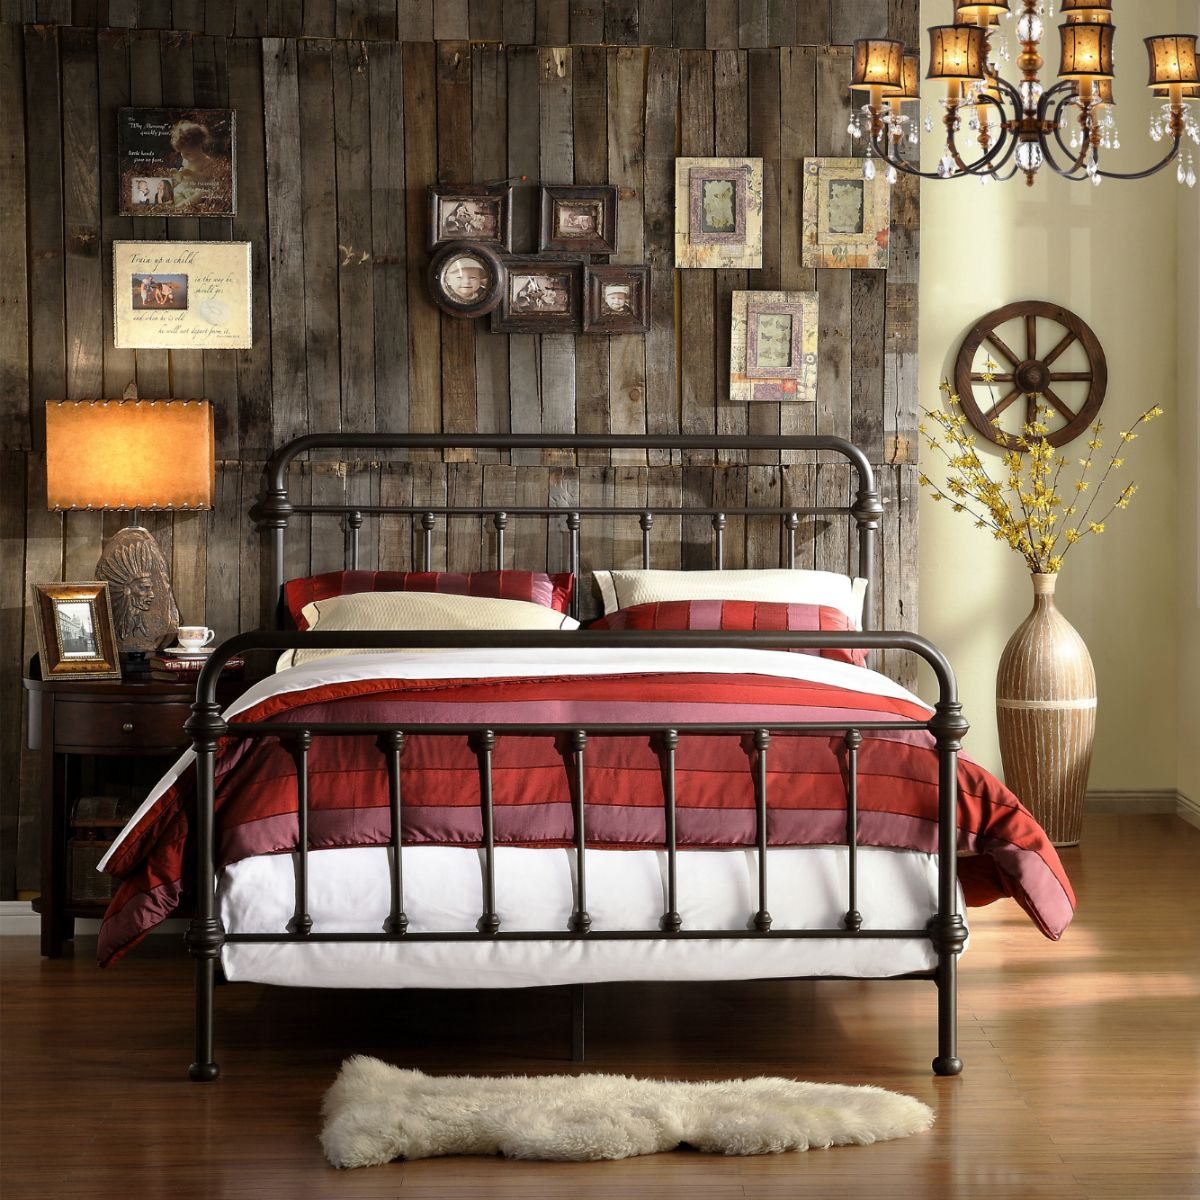 Is It Time To Decorate The Master Bedroom Suite This Gorgeous Bedframe In A Rustic Wrought Iron Finish Says Rustic Bedroom Furniture Iron Bed Frame Home Decor